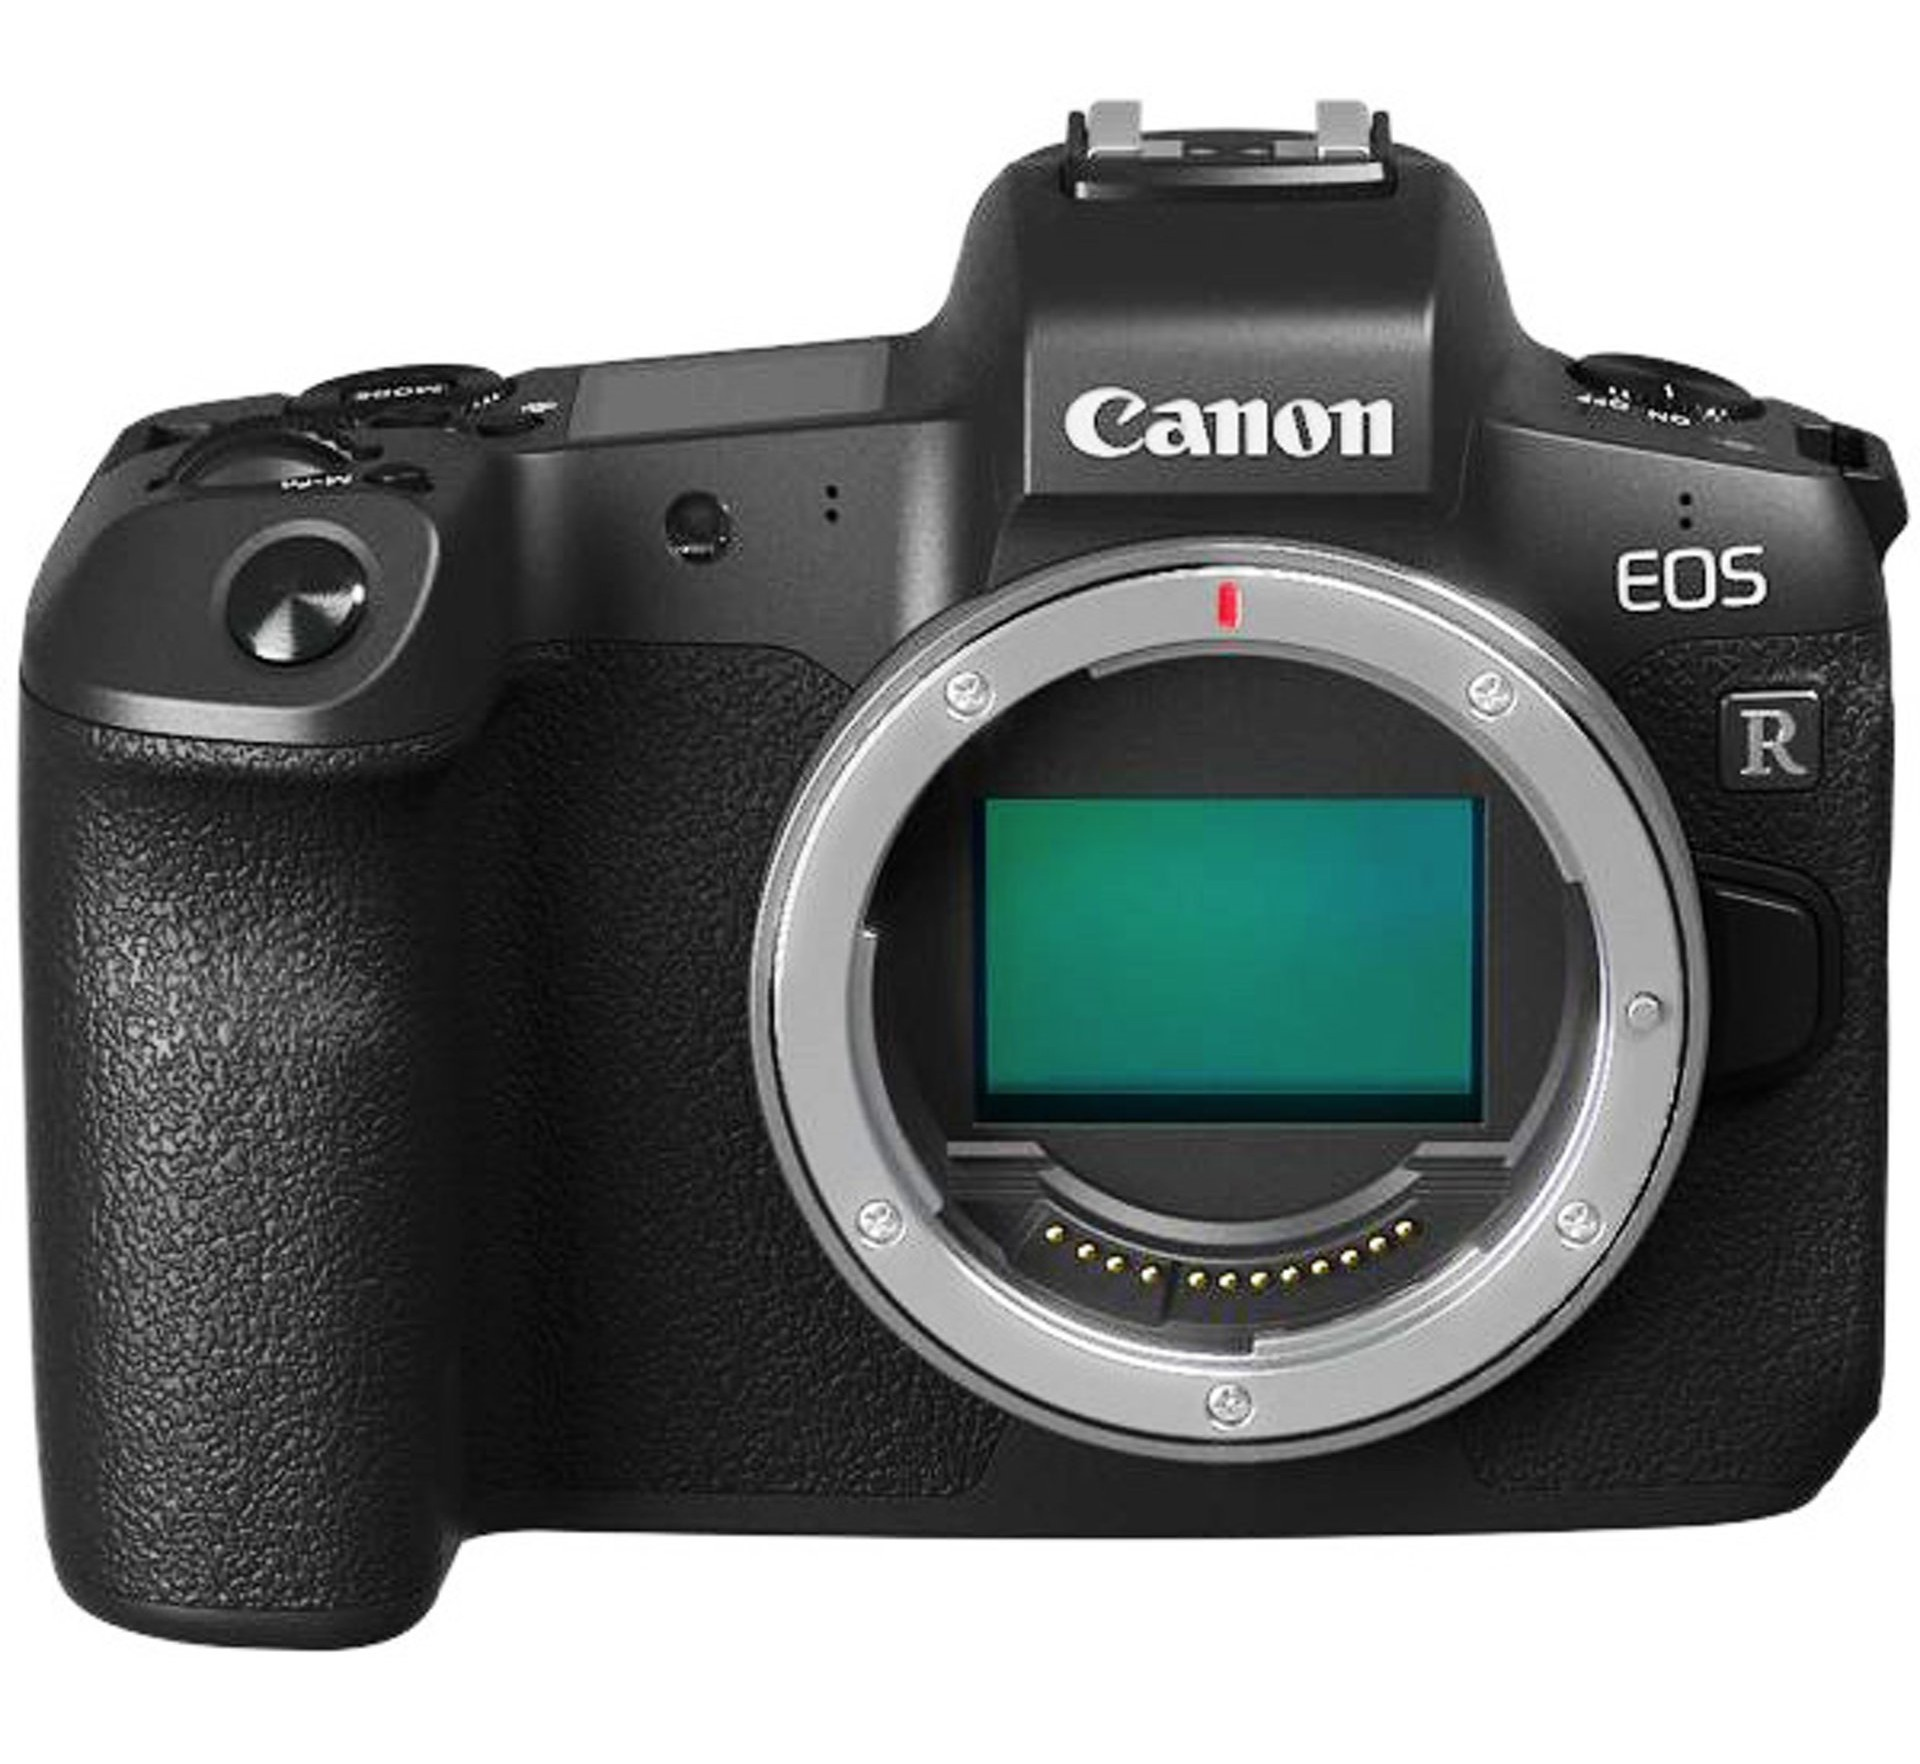 Canon Camera Rumors 2019: Is an EOS R Pro on the Horizon?